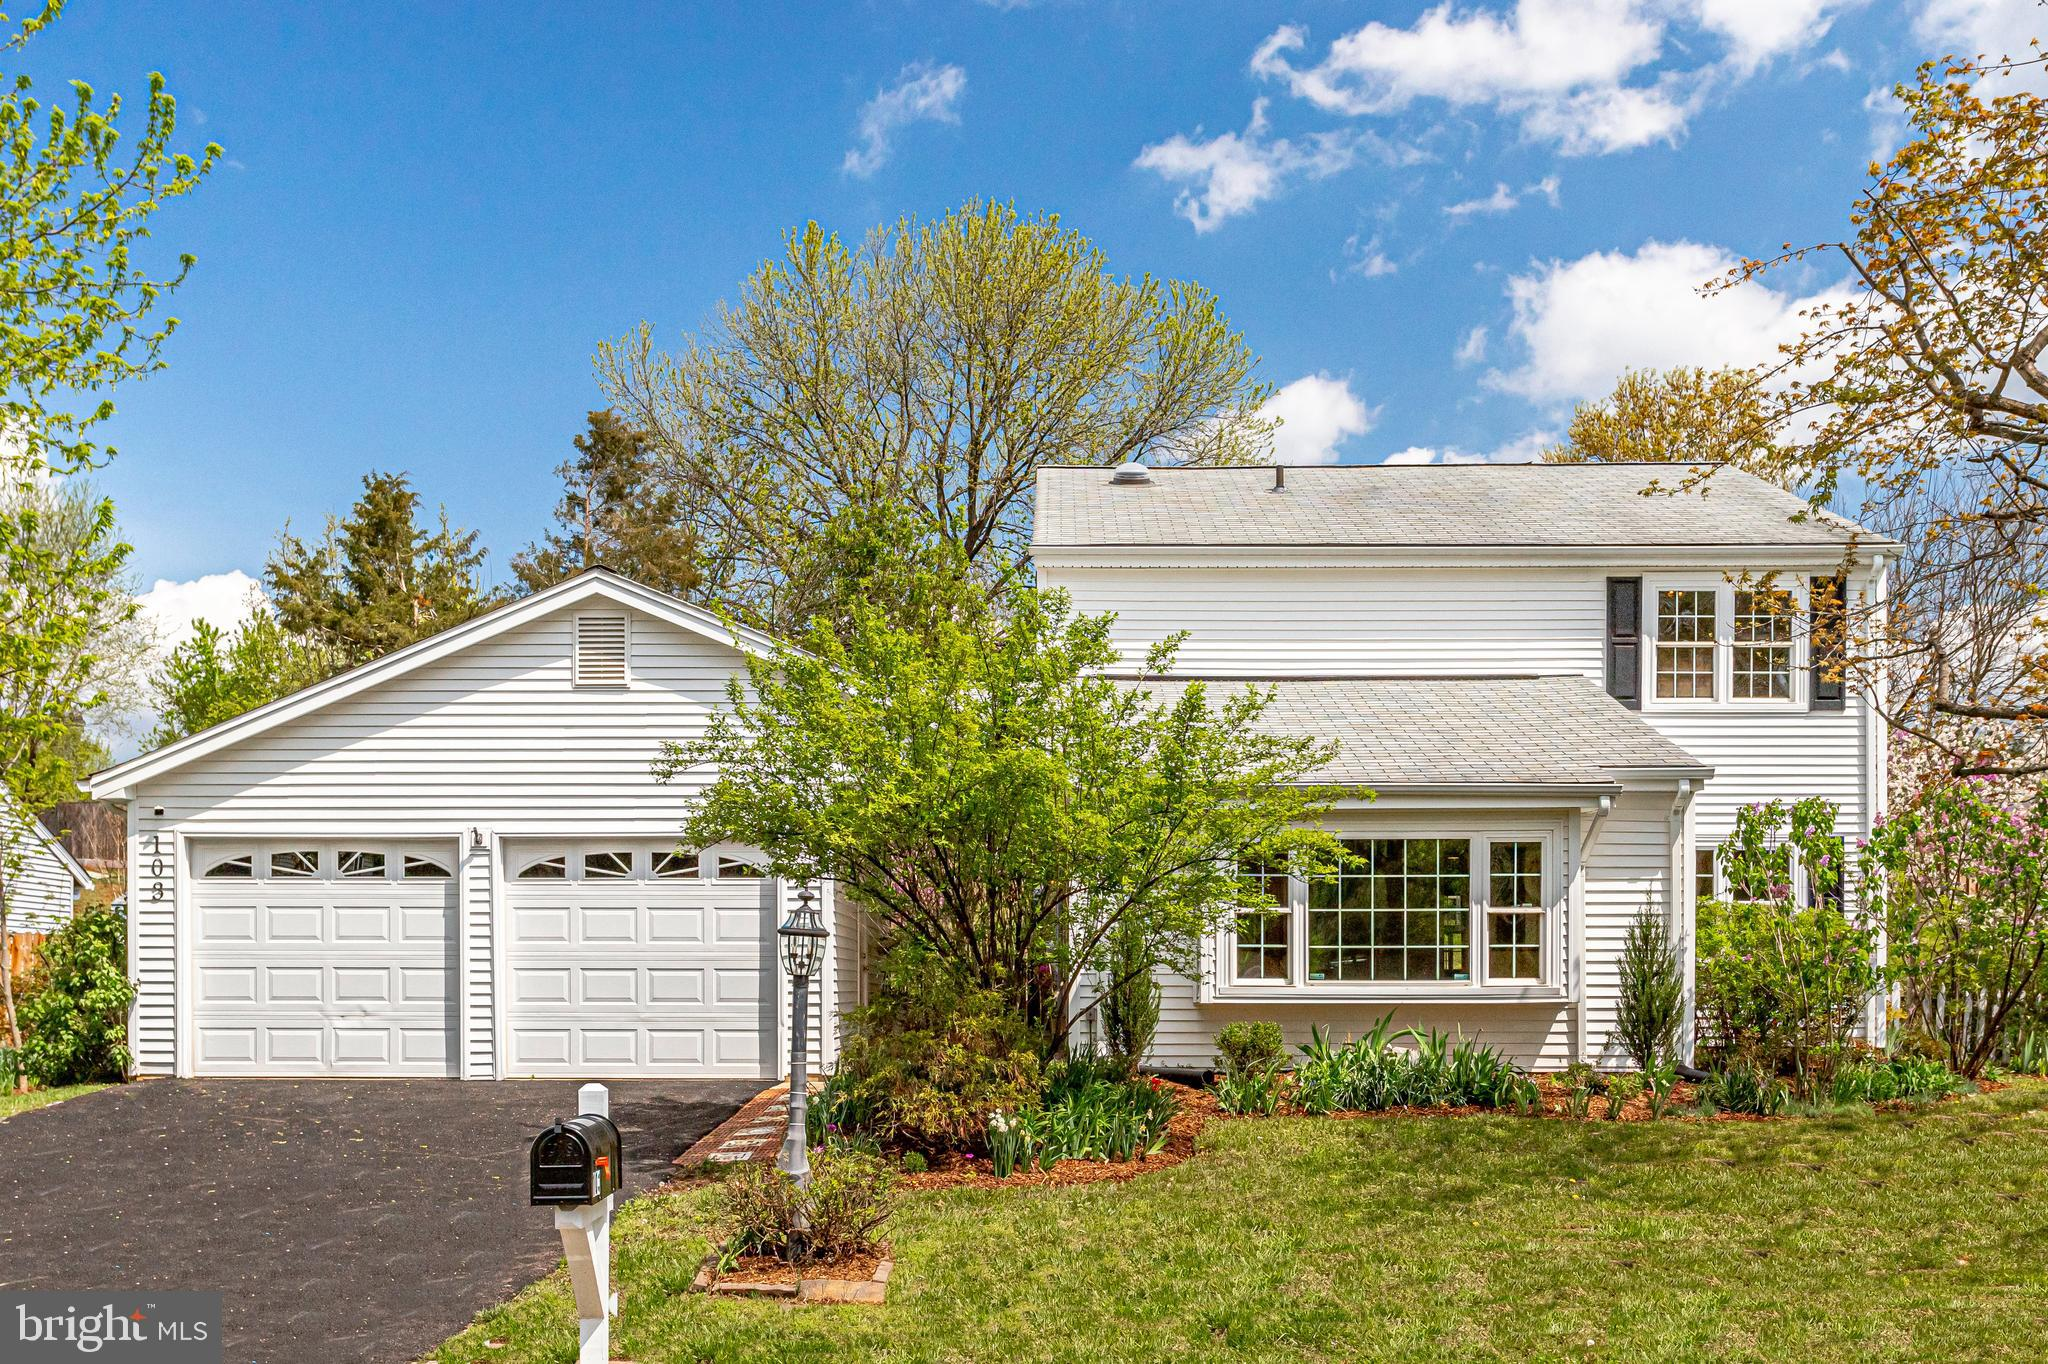 EXCITING NEW LISTING & FIRST OPEN HOUSE, SATURDAY, 4/17 FROM 2-4PM.  Beautifully presented 2-level h